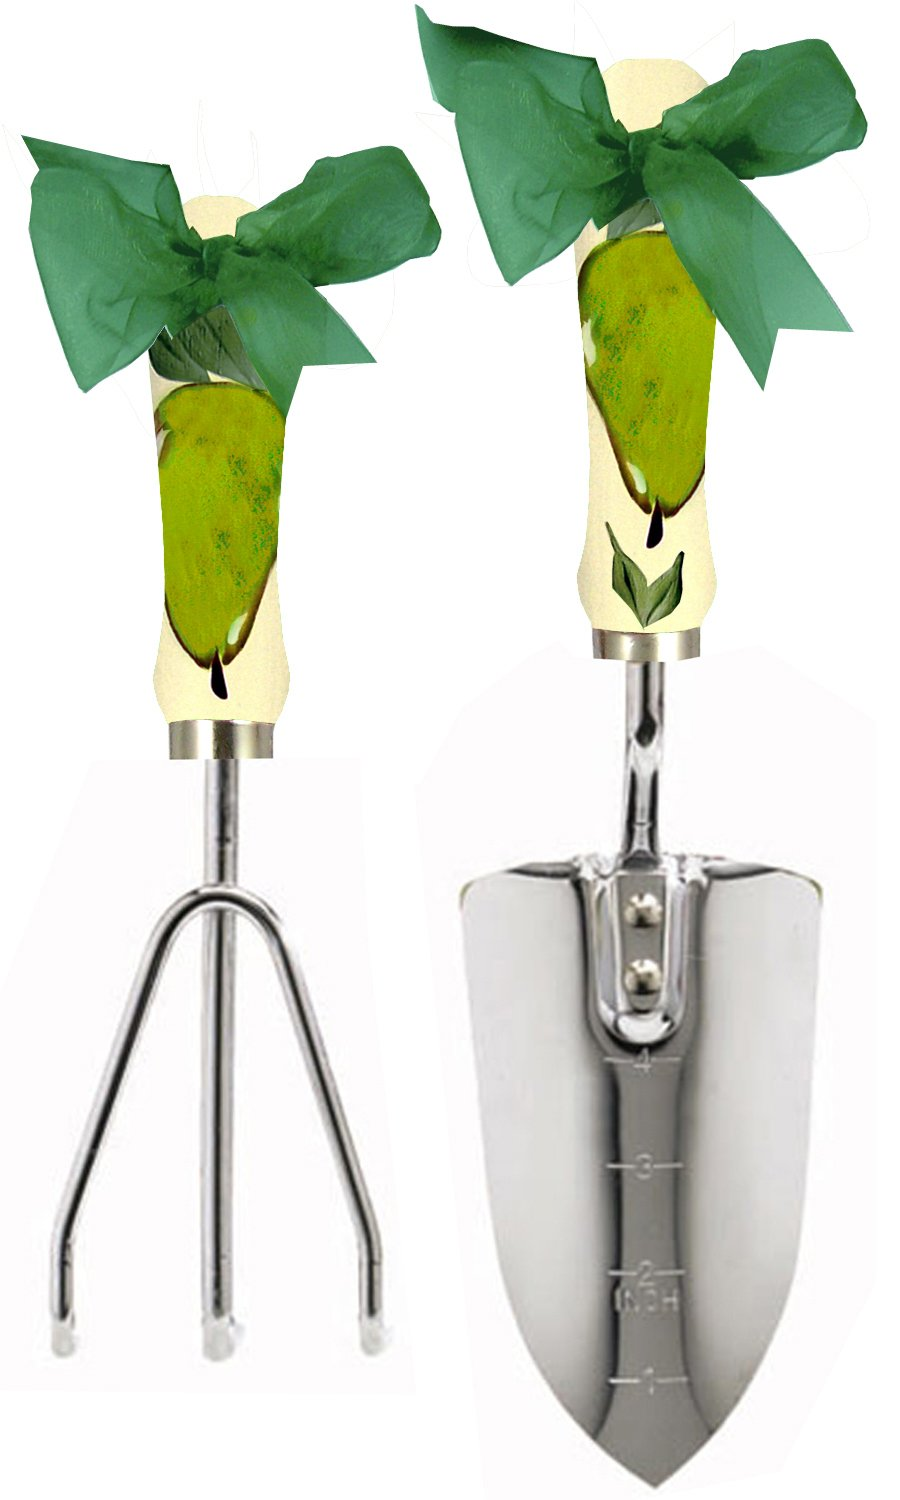 Cute Tools Stainless Steel Garden Shovel and Three Prong Rake - Landscaping Instrument, Hand Painted Wooden Handle In The USA, Durable Yard and Gardening Equipment From CuteTools! - Art For A Cause, Pear